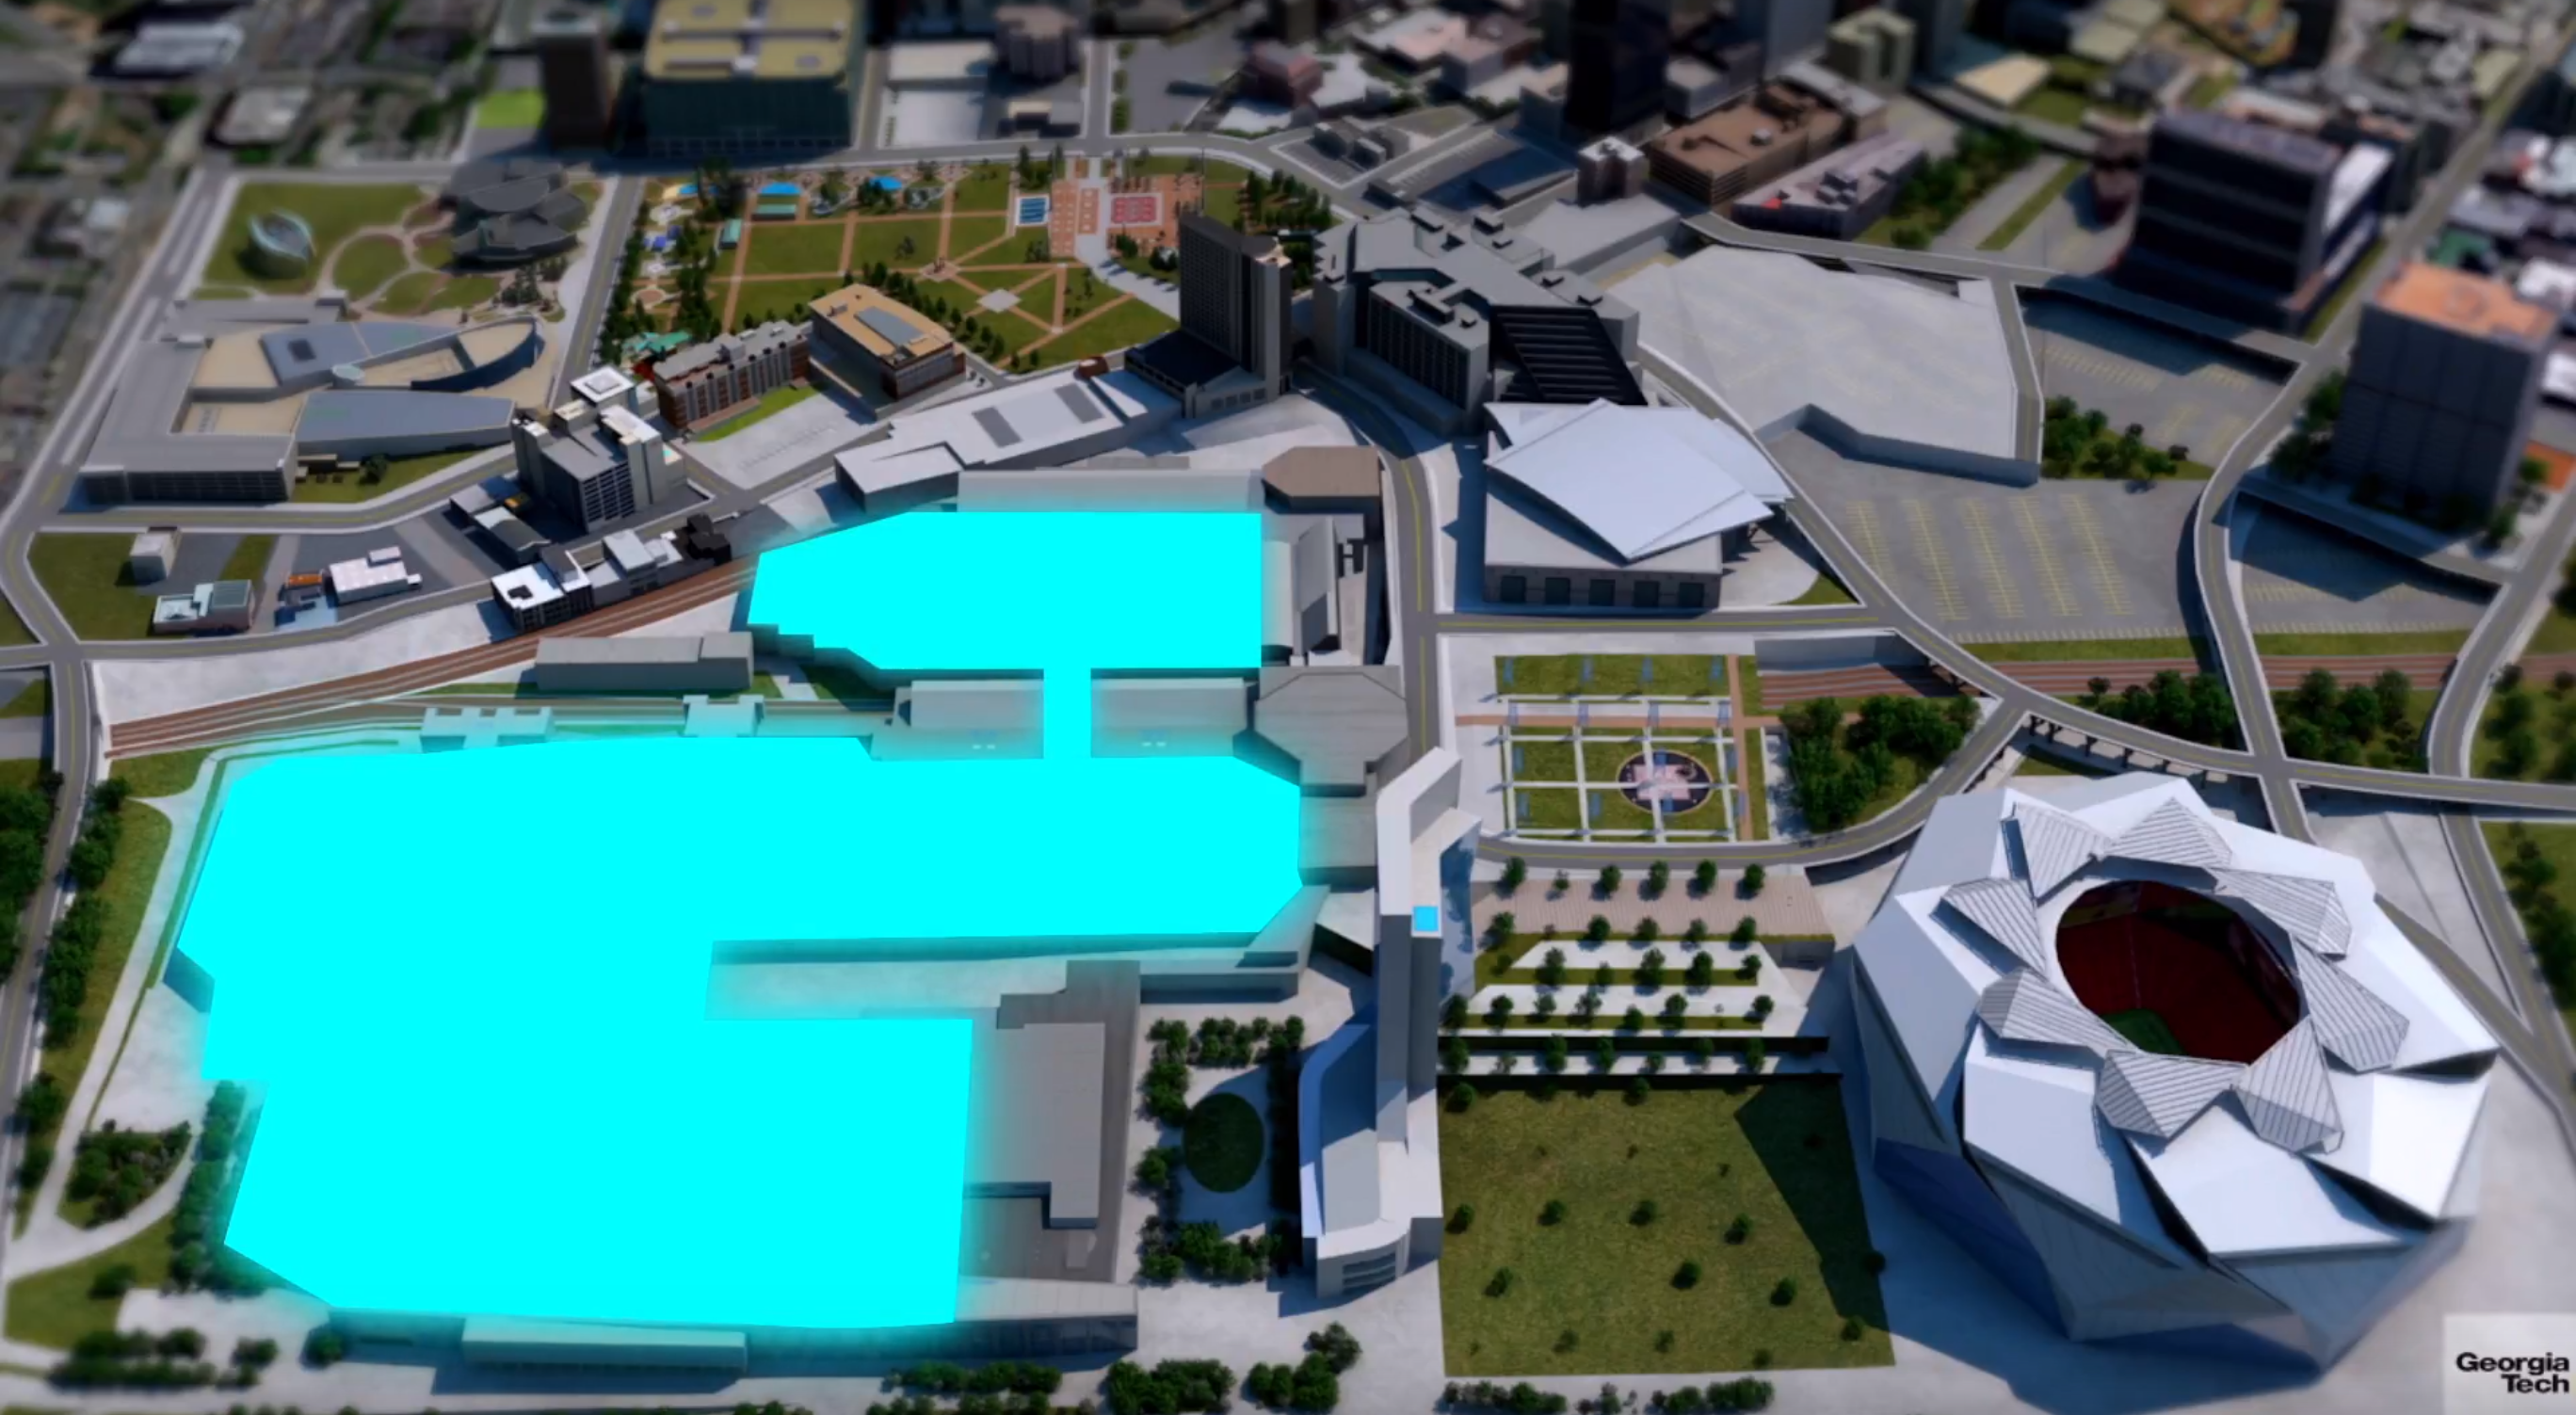 The blue symbolizes all of the connected exhibit space proposed in the expansion, with a new hotel overlooking Mercedes-Benz Stadium's lawn.